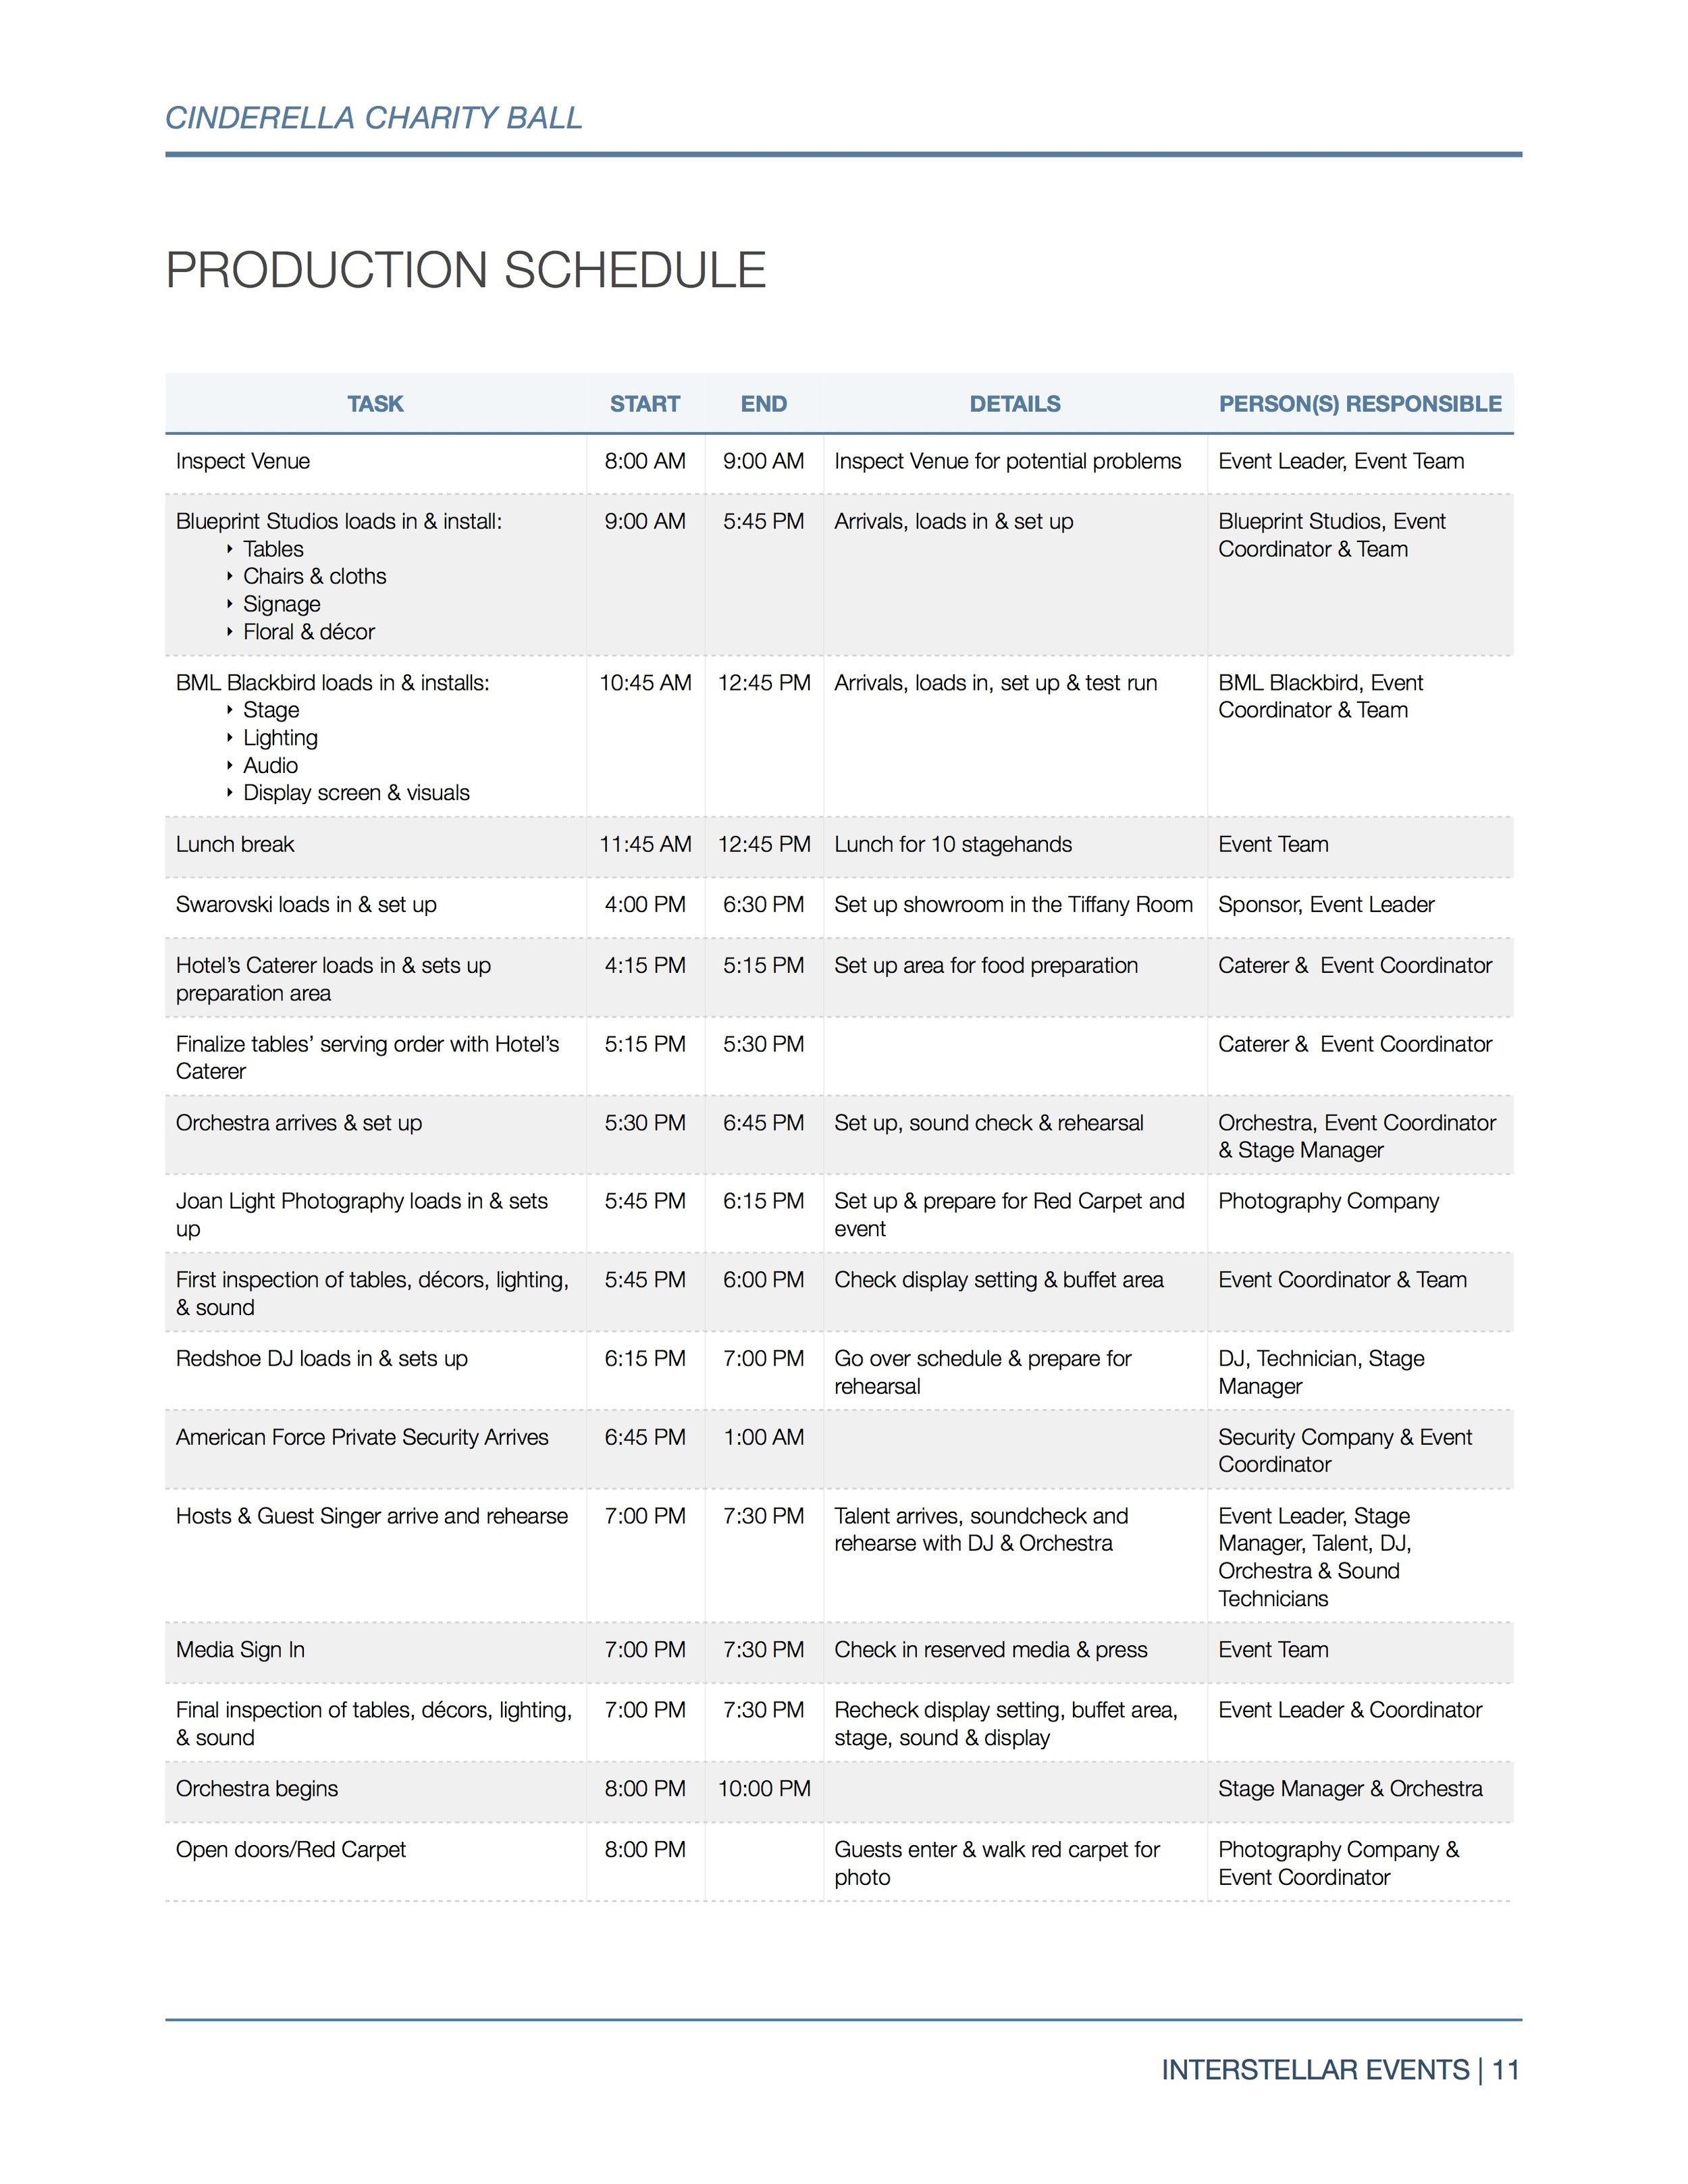 PRODUCTION SCHEDULE.jpg